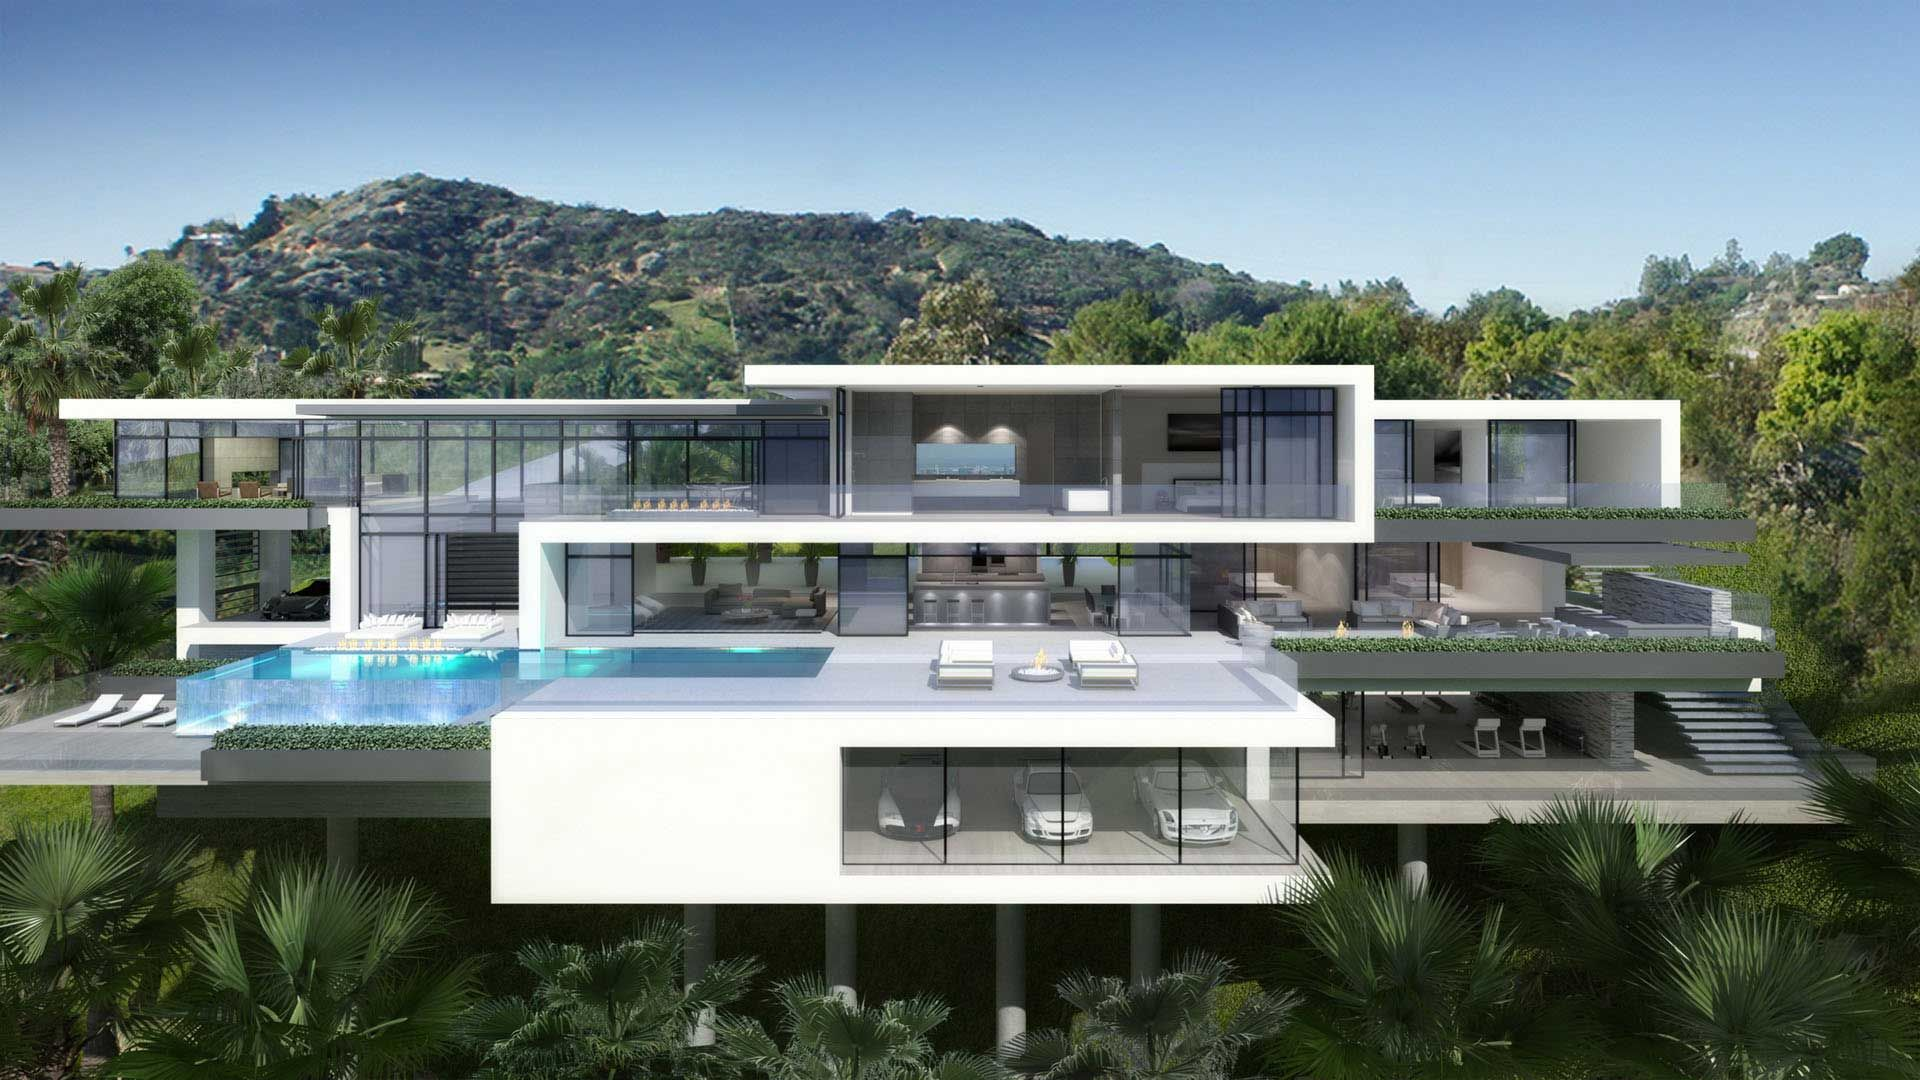 Luxury ultramodern mansions on sunset plaza drive in los angeles http www